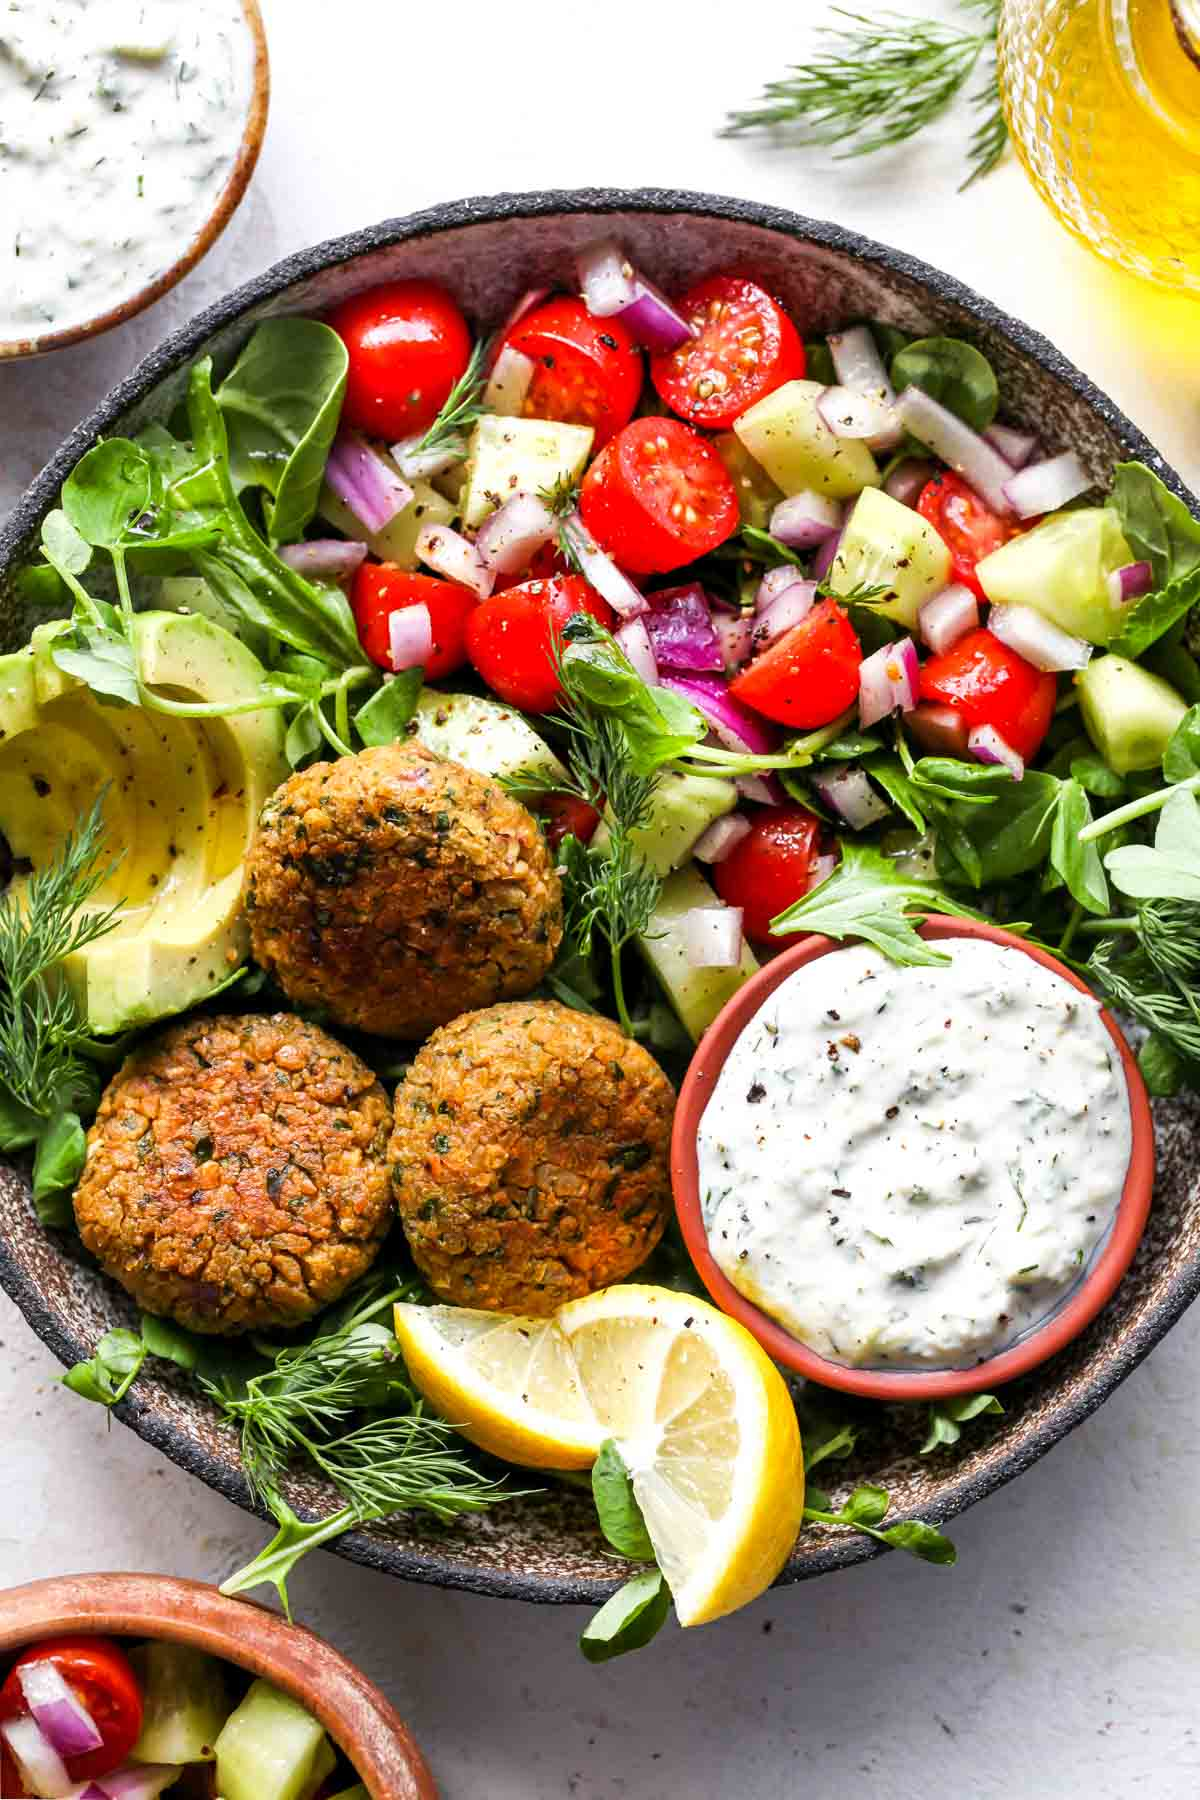 Falafel and vegan tzatziki served in a bowl with tomato salad